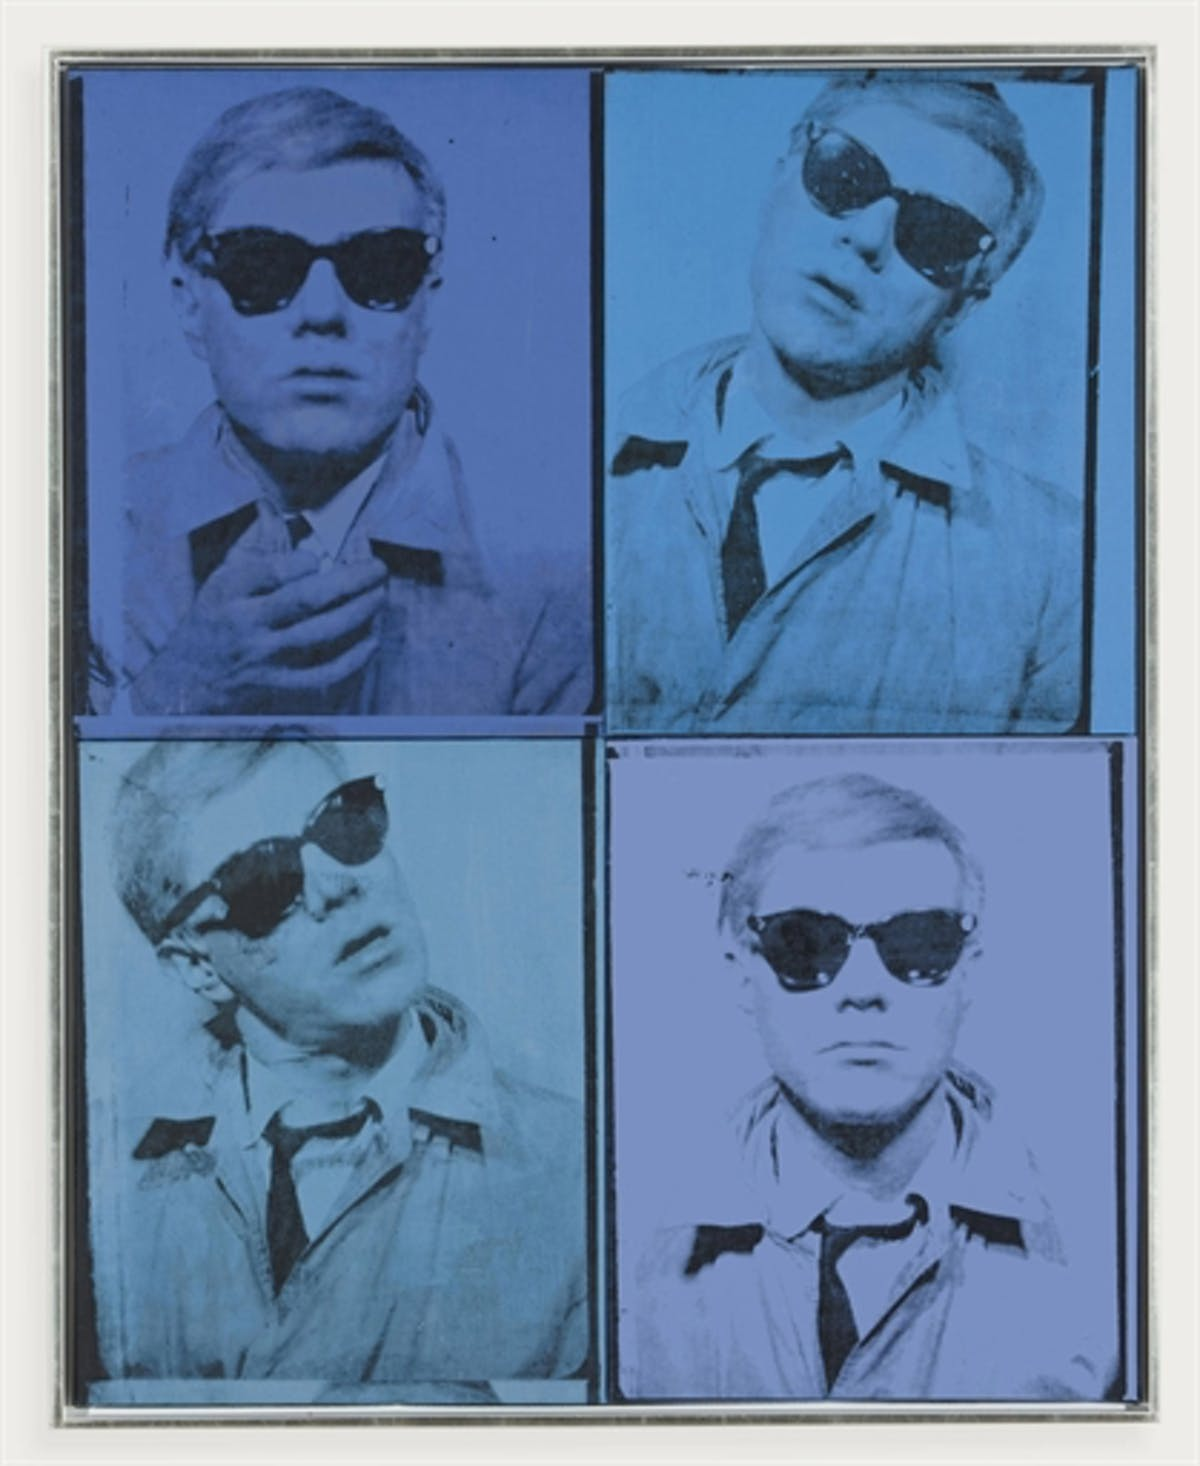 Andy Warhol, 'Self-Portrait'. Image: Barnebys